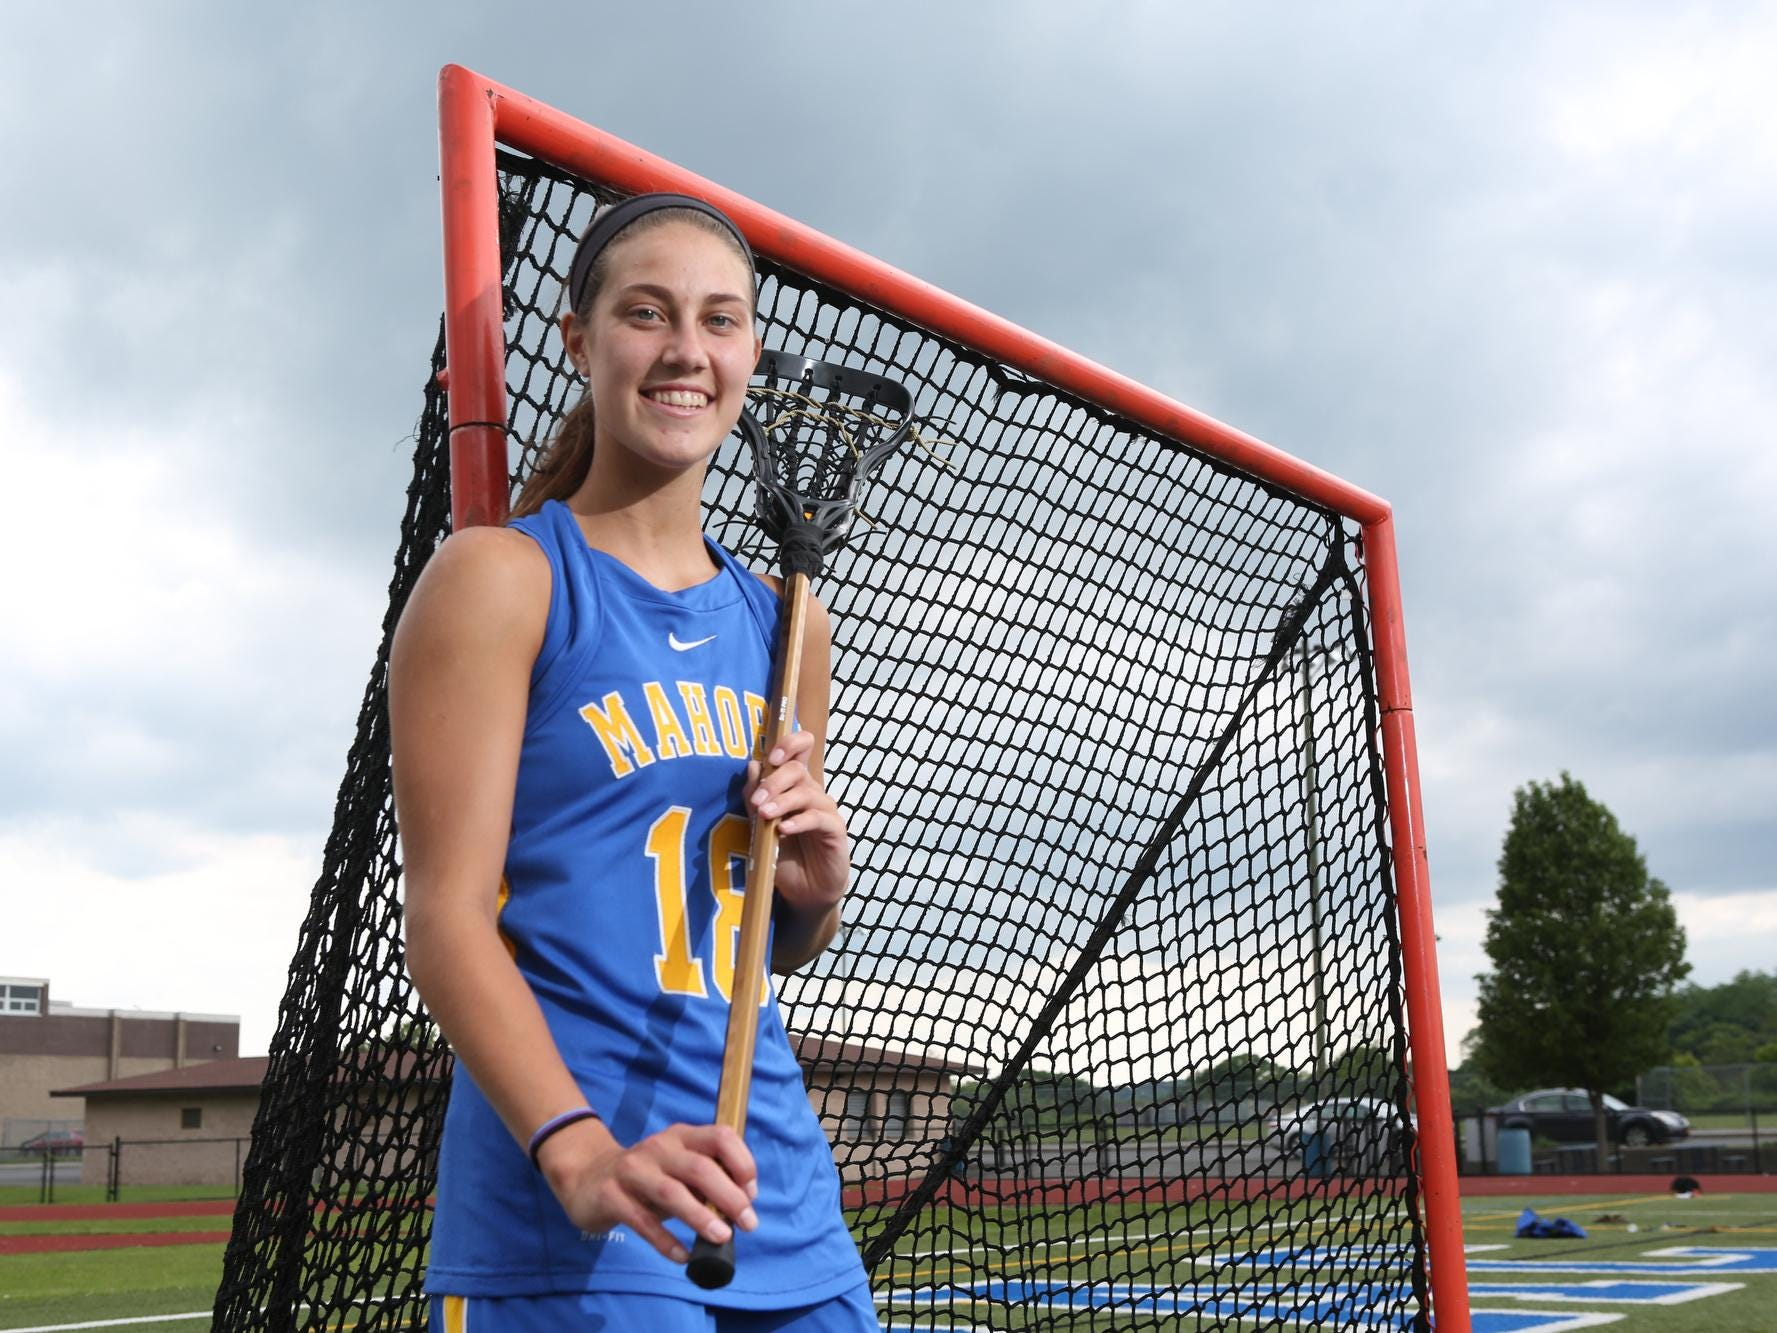 Westchester/Putnam Girls Lacrosse Player of the Year, Mahopac's Kim Harker poses at Mahopac High School June 19, 2015.